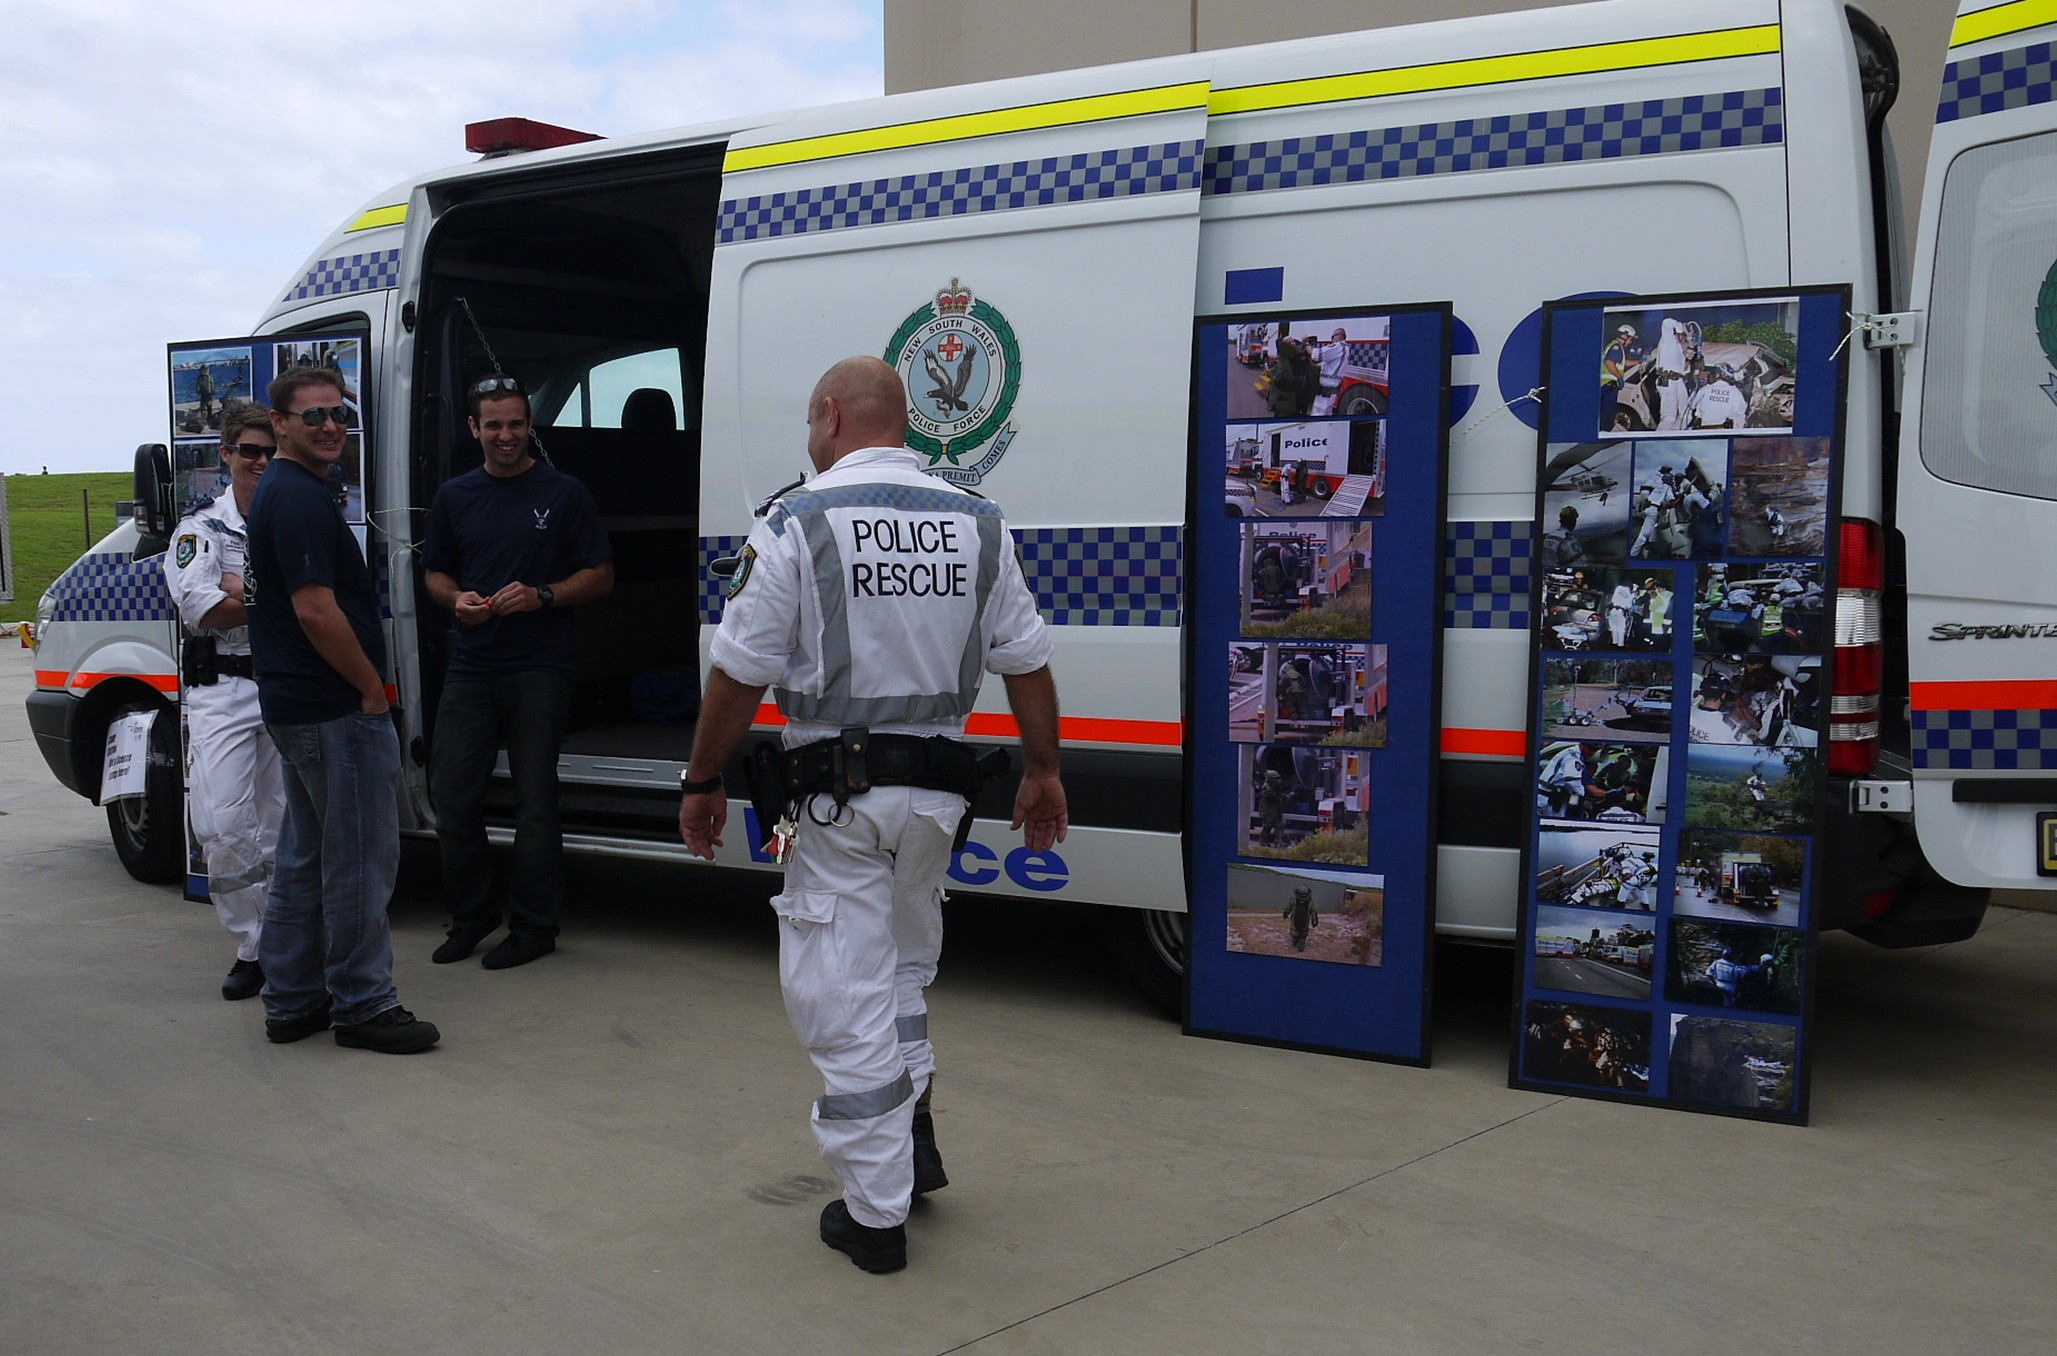 File:Officers from NSWPF Rescue and Bomb Disposal Unit